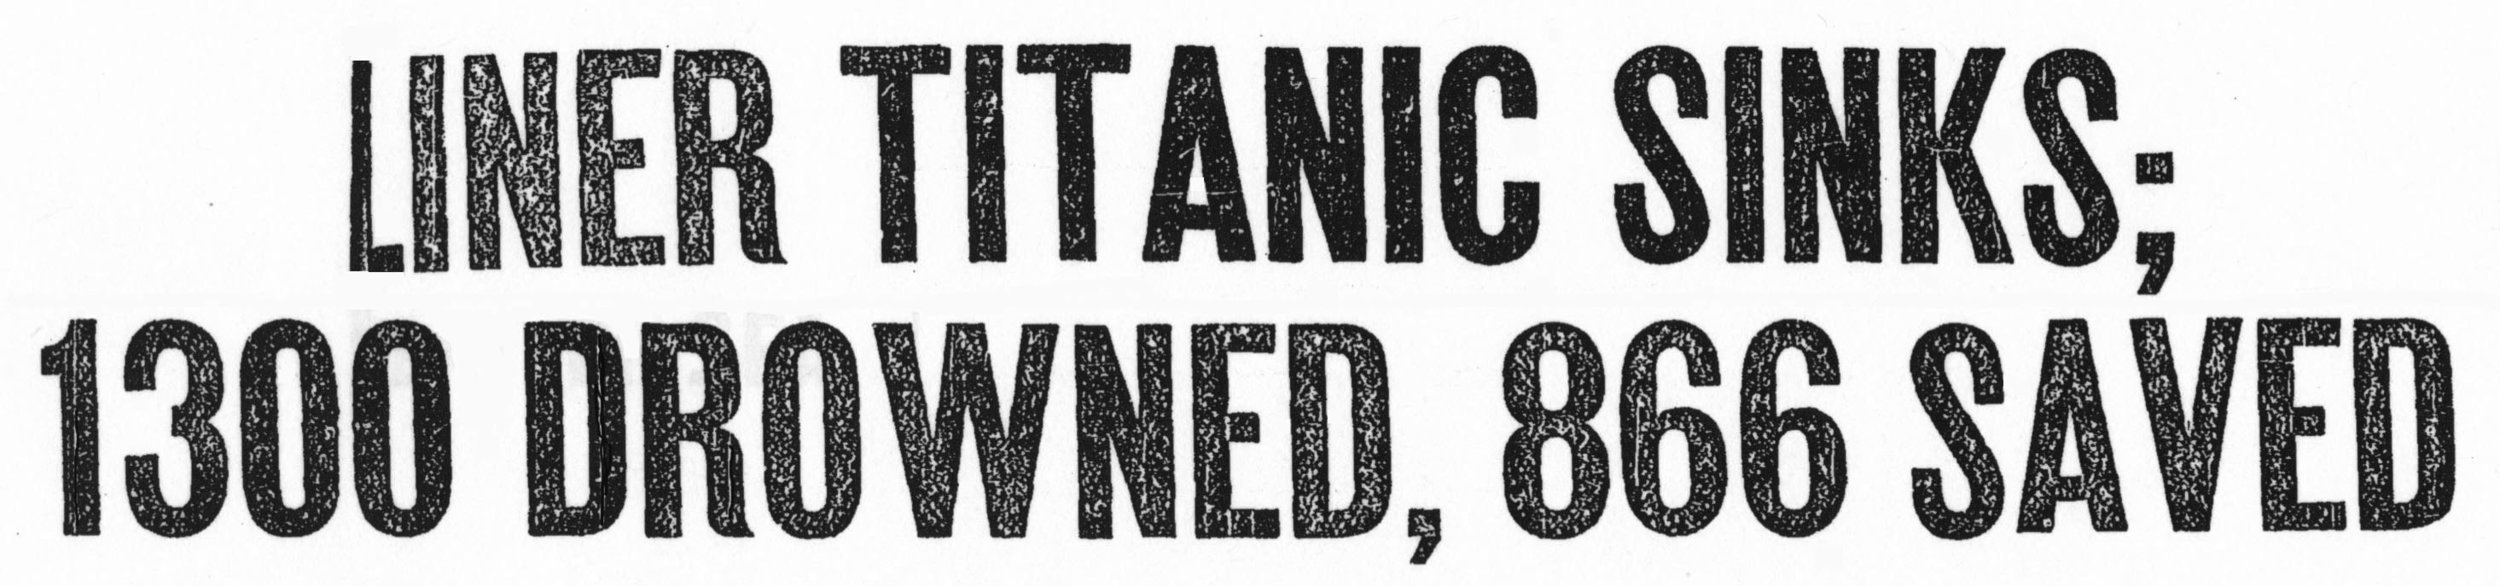 Titanic sinks headline.jpg